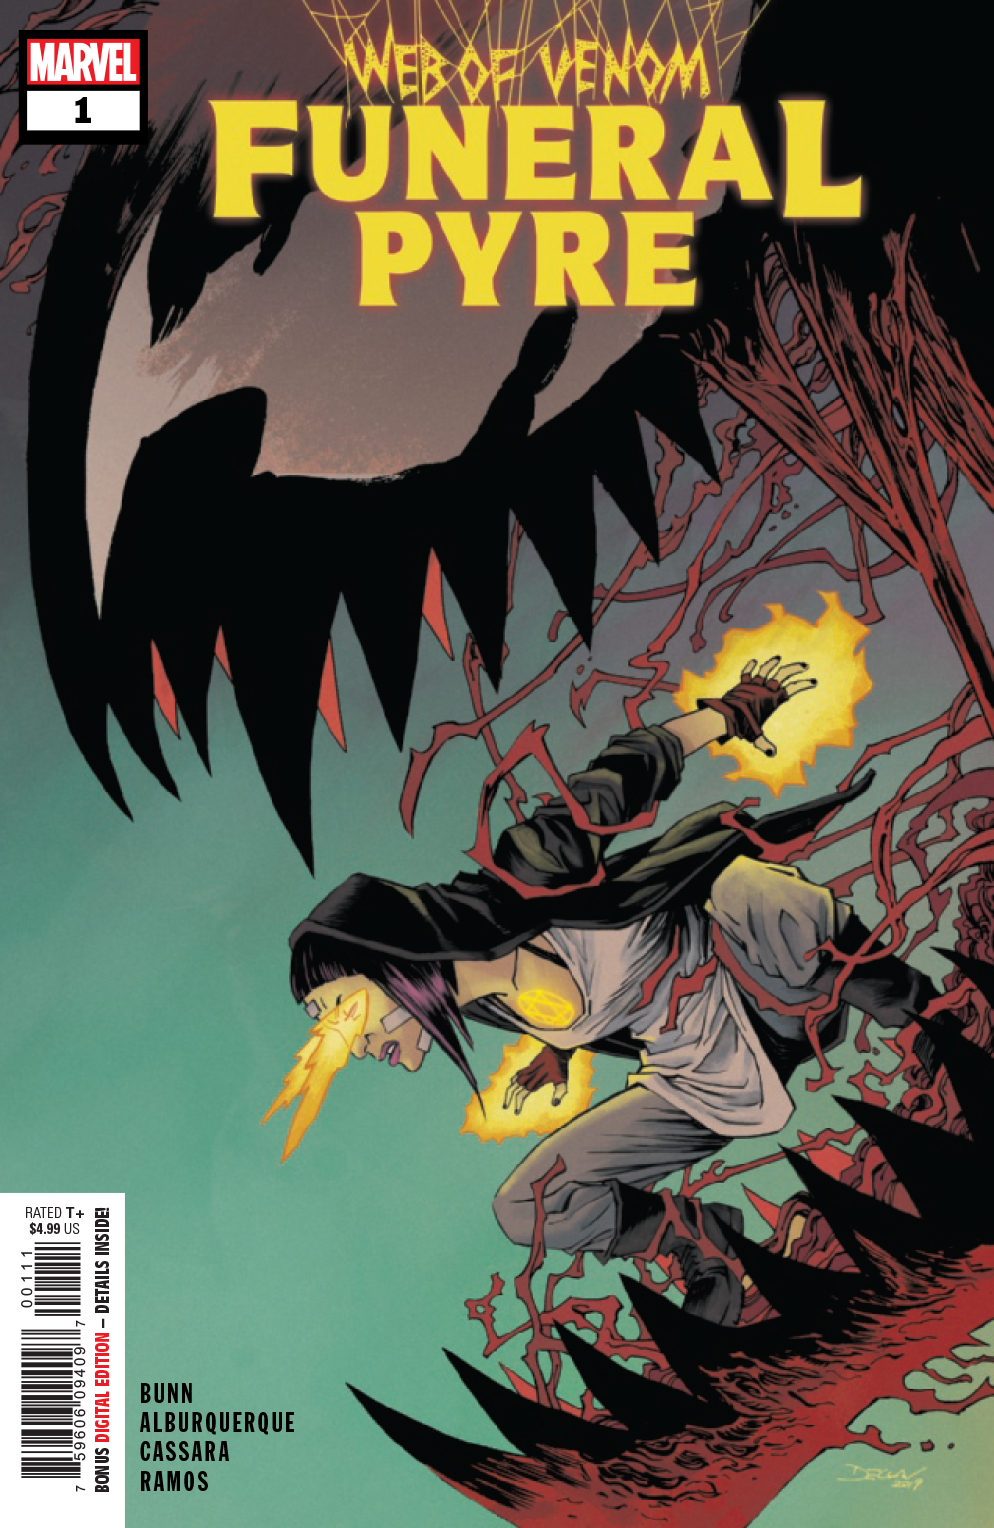 MAY190842 - WEB OF VENOM FUNERAL PYRE #1 - Previews World